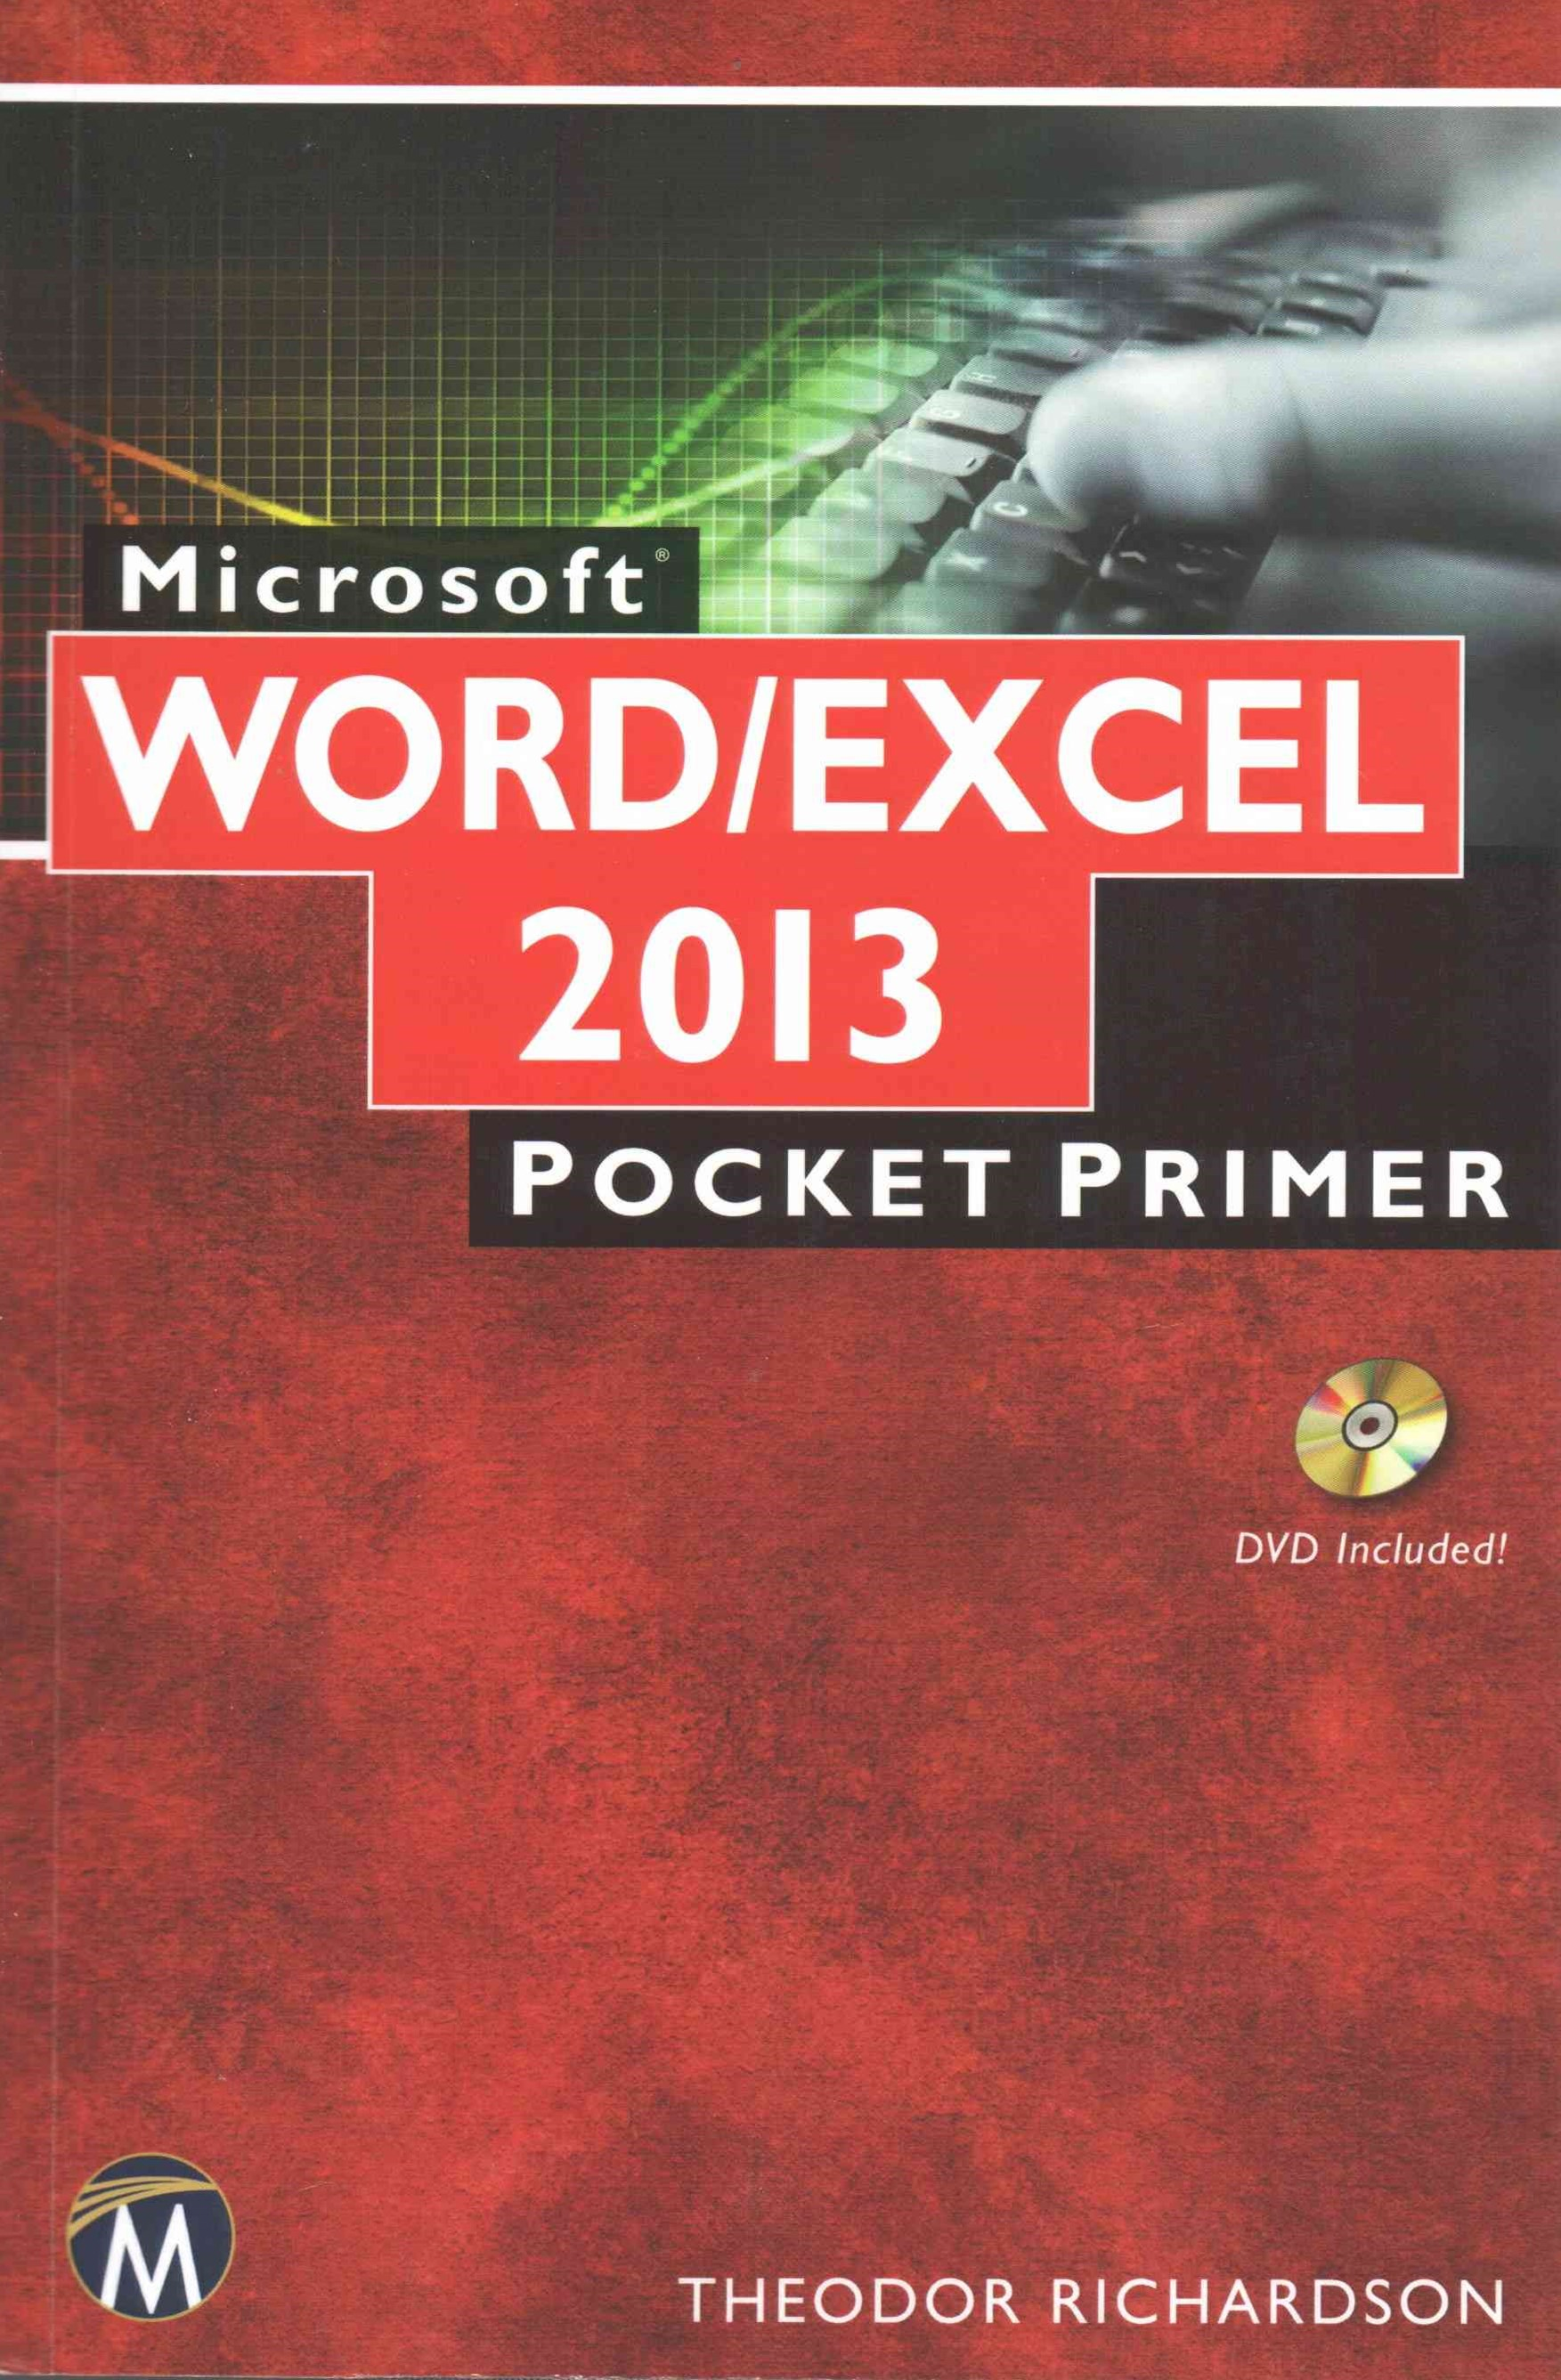 Microsoft Word and Excel 2013 / 365 Pocket Primer